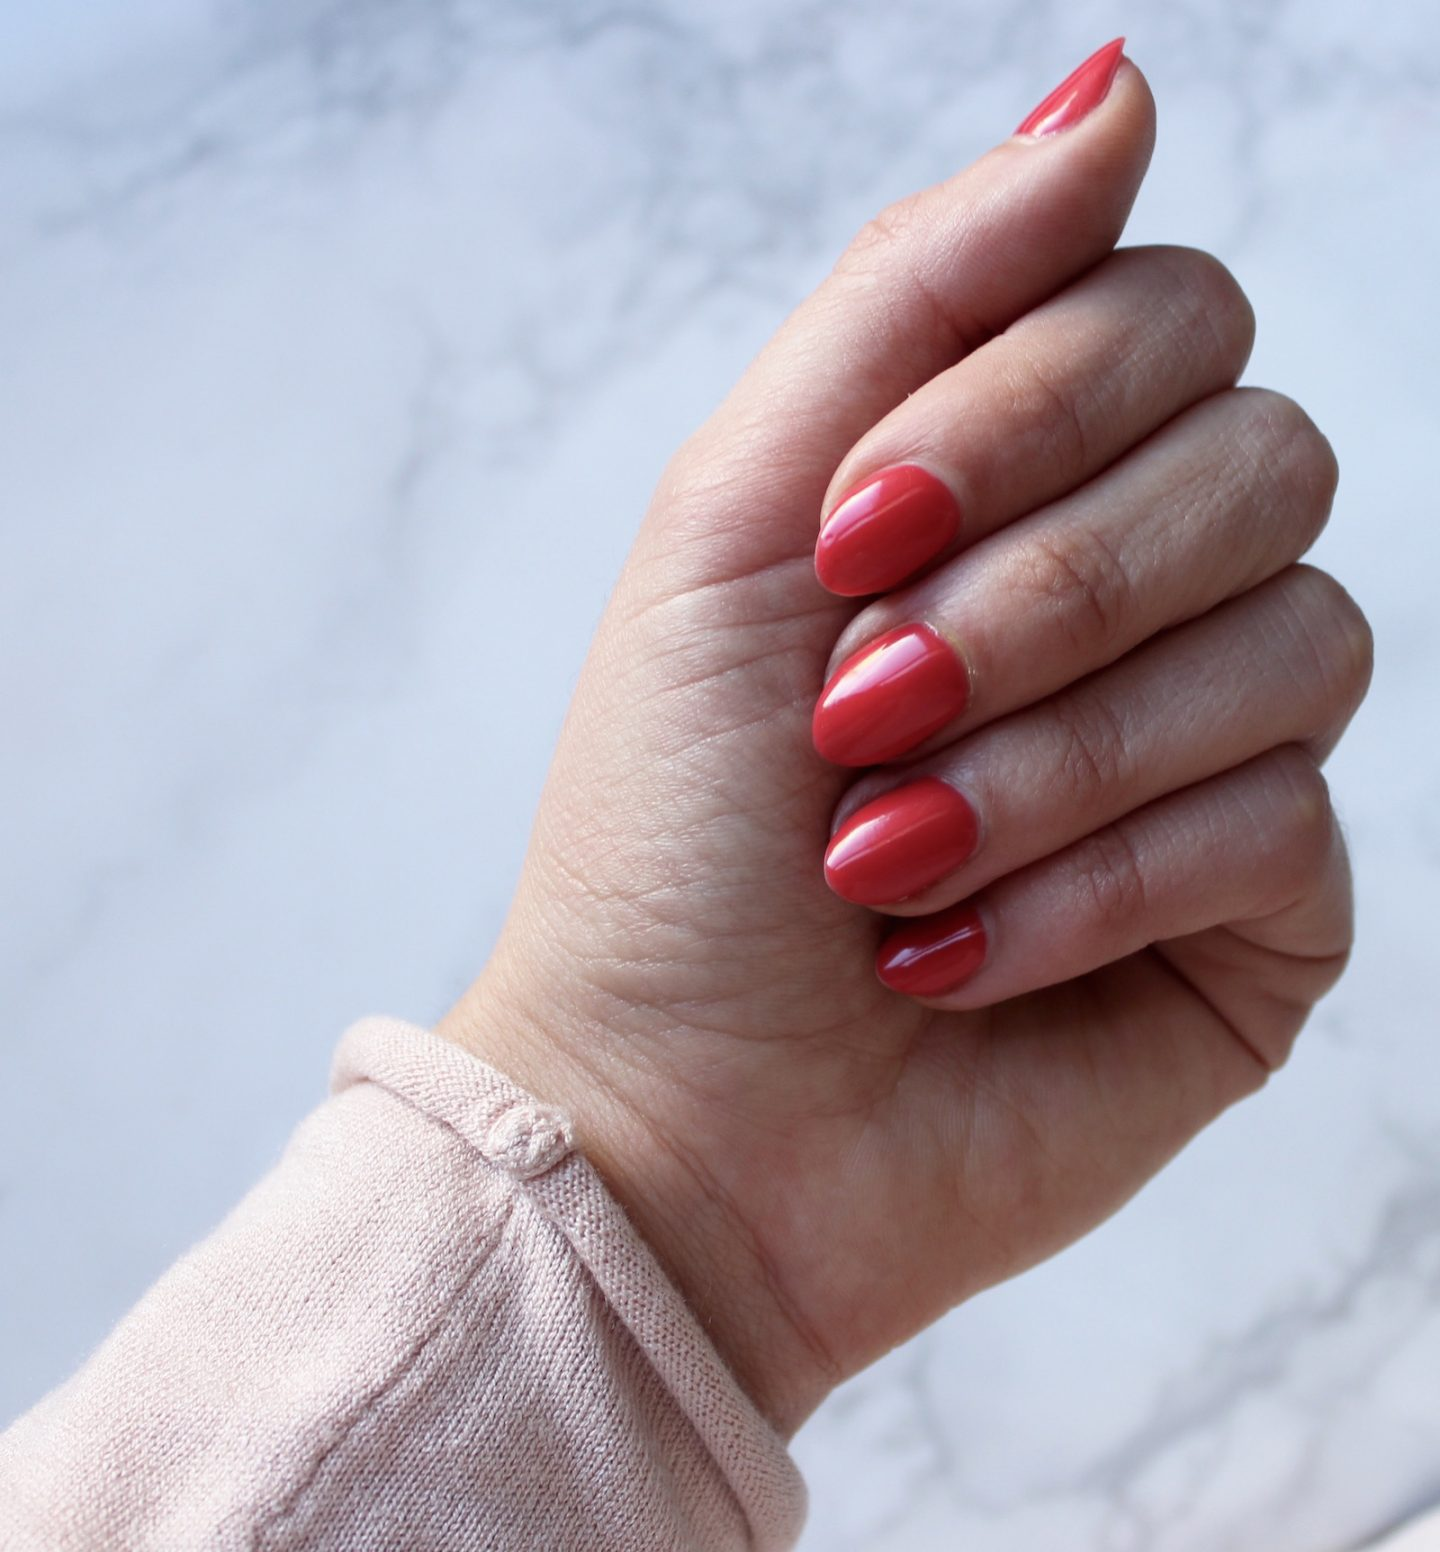 Diy gel nails at home the bellezza corner when i realized i could figure out how to safely remove the polish myself i started really getting into the whole project solutioingenieria Images